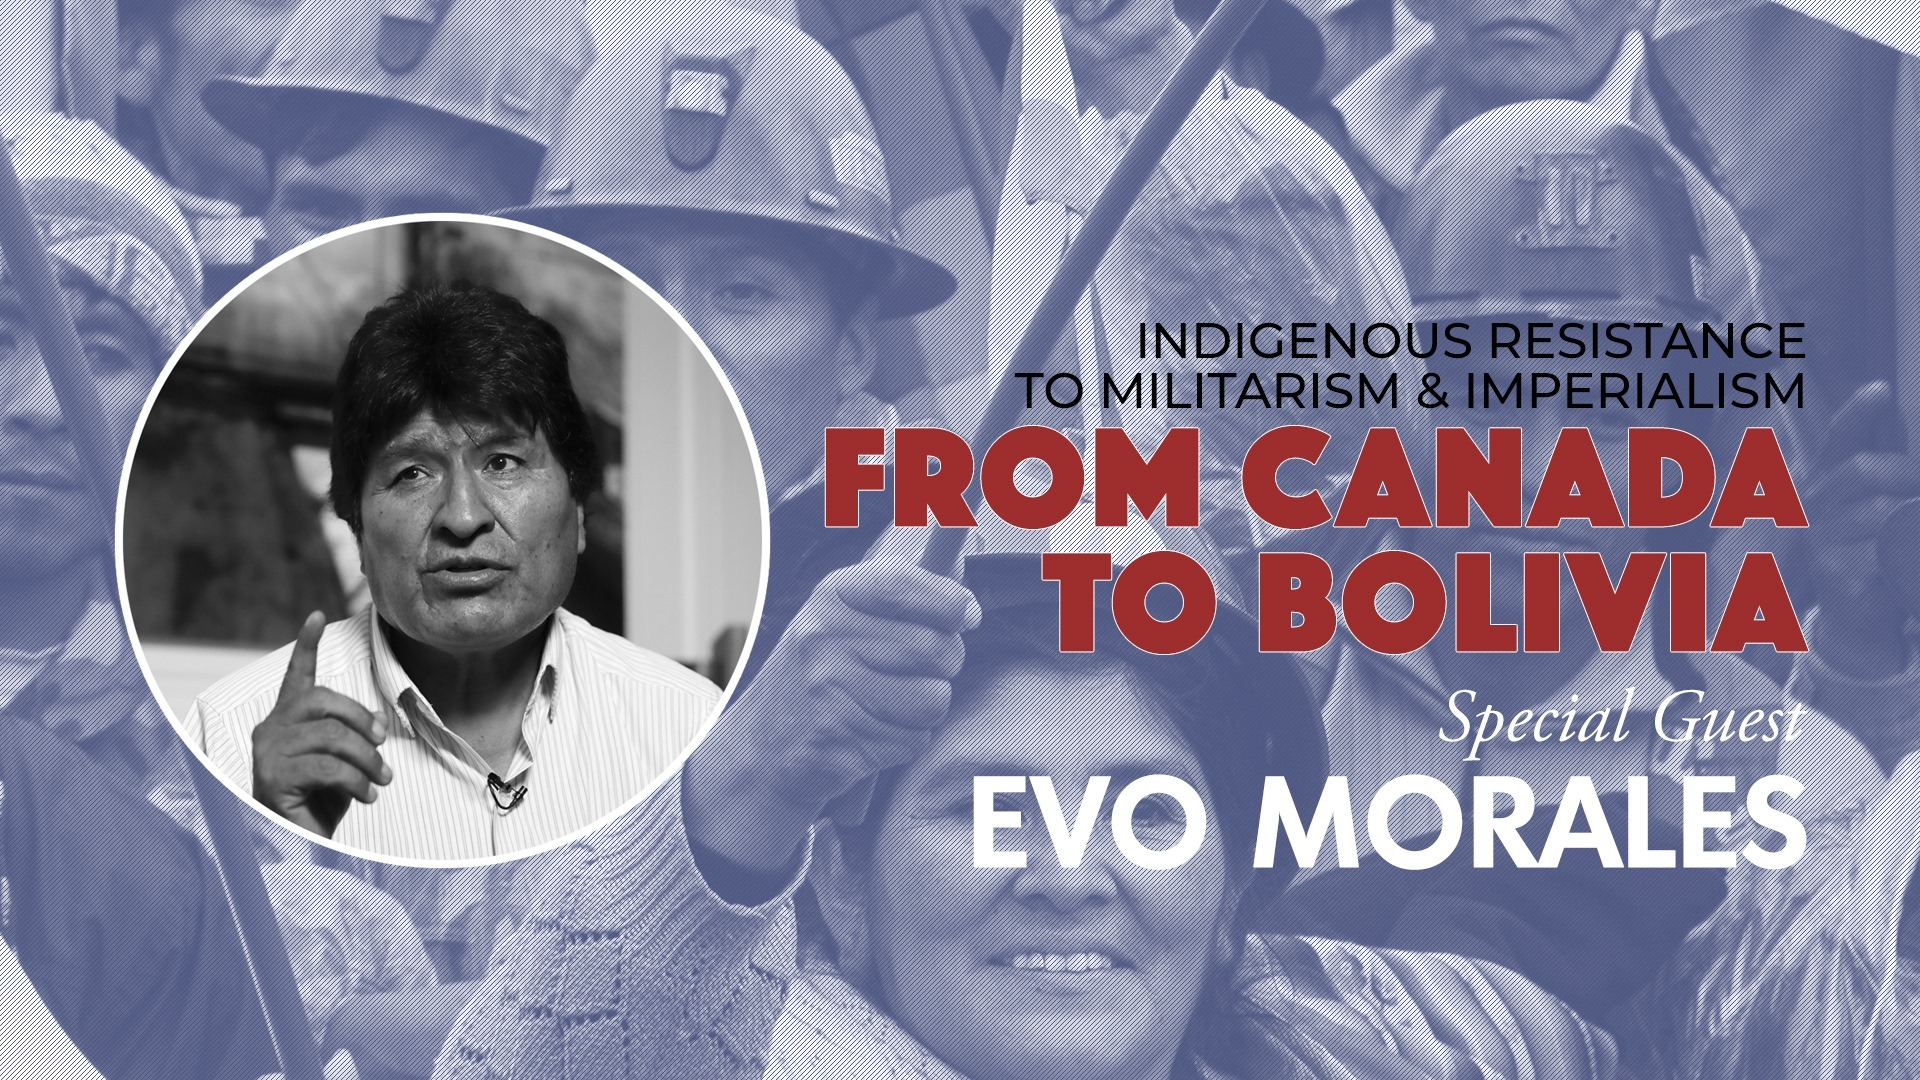 From Canada to Bolivia with Evo Morales